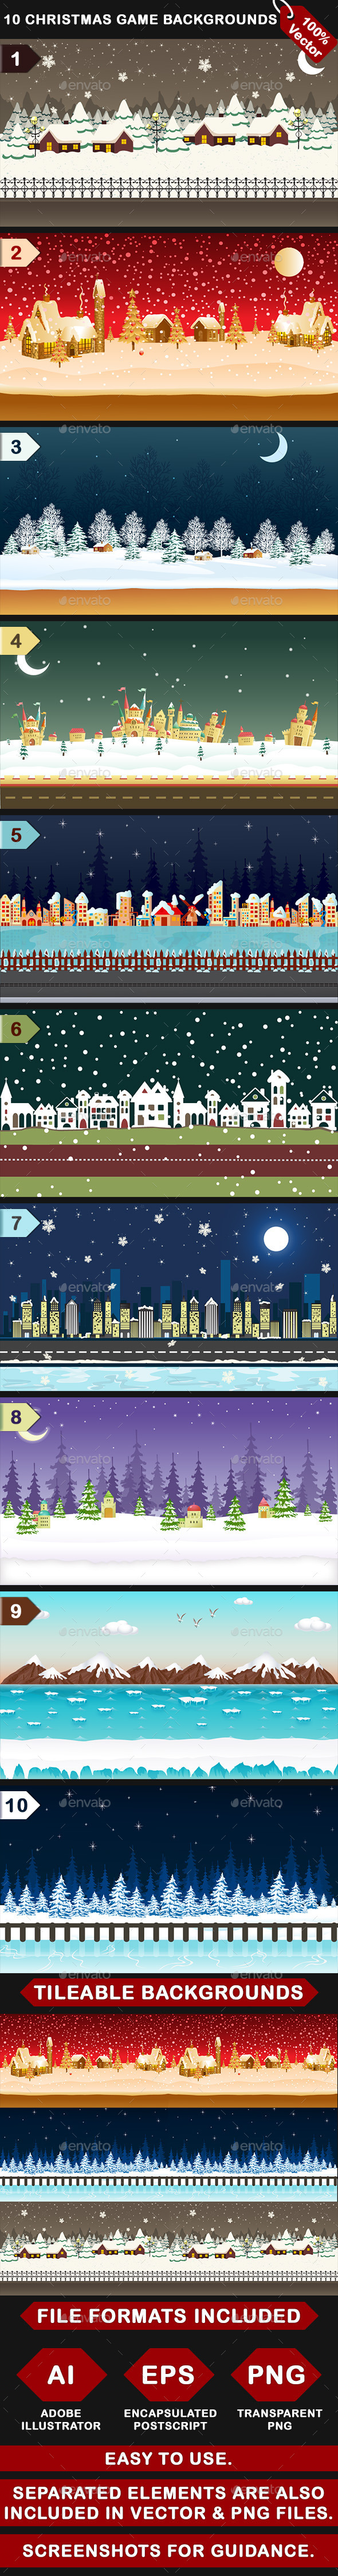 10 Vector Christmas Mobile Game Backgrounds - User Interfaces Game Assets